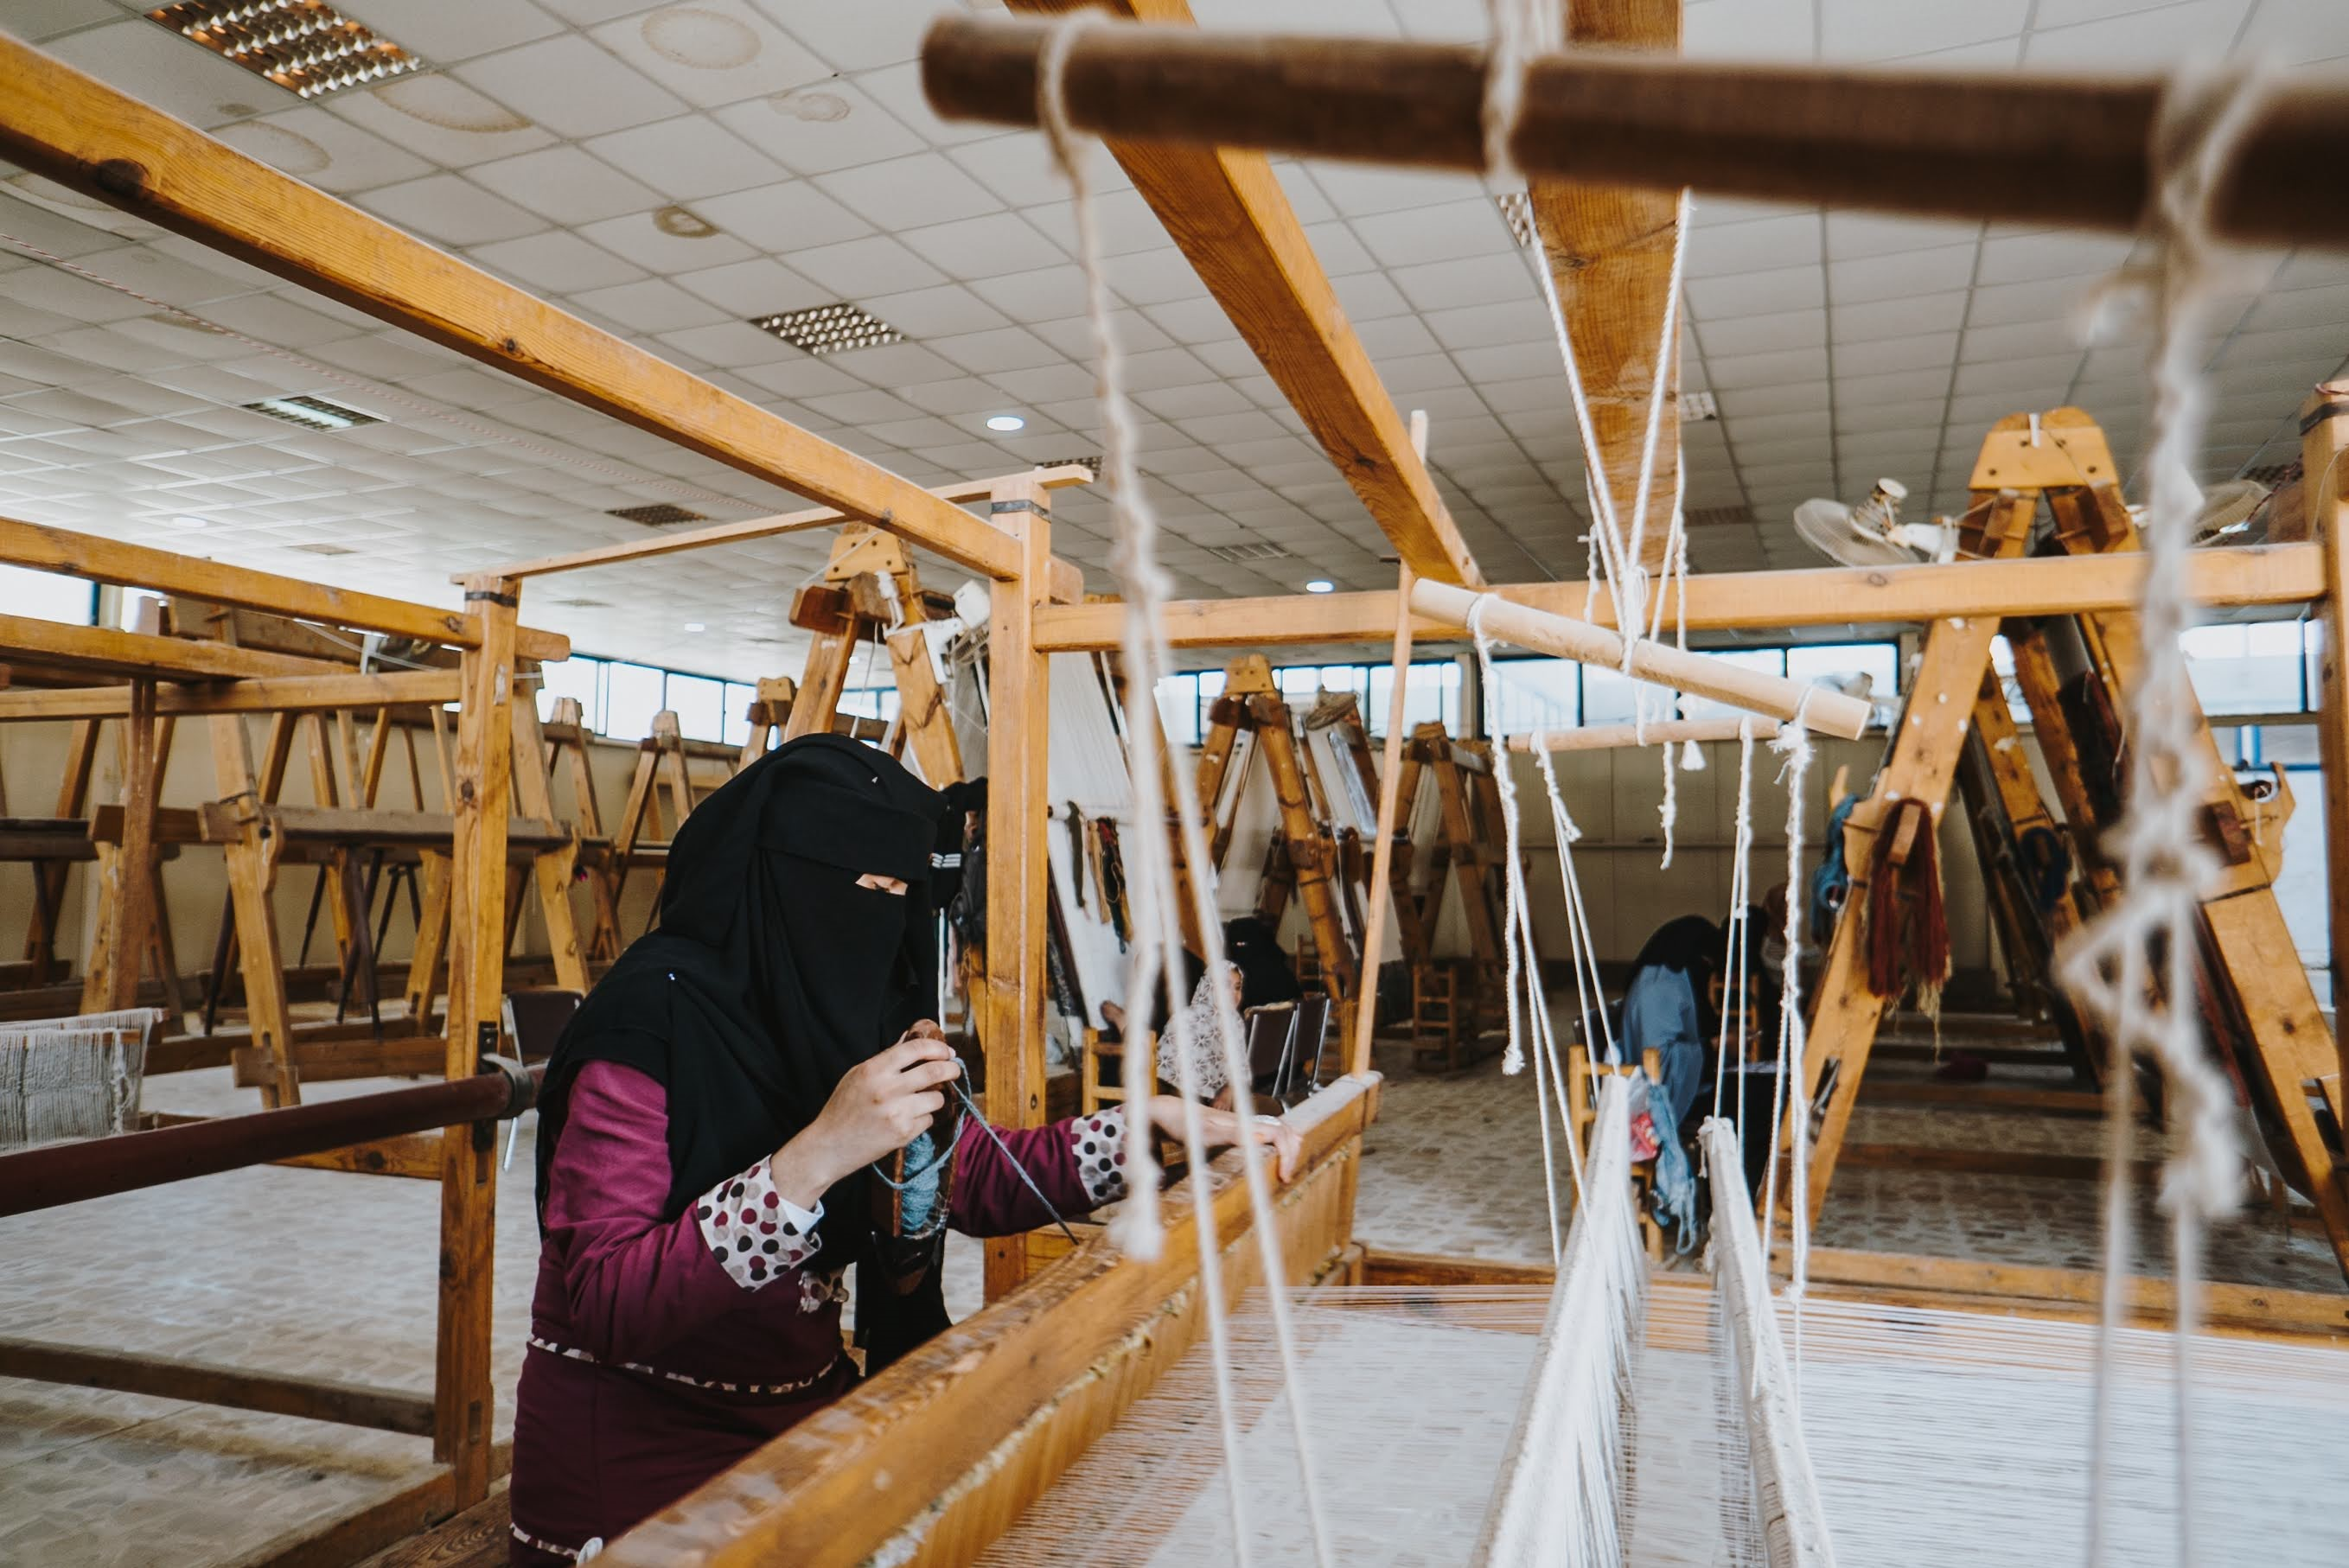 Women working in the Middle East